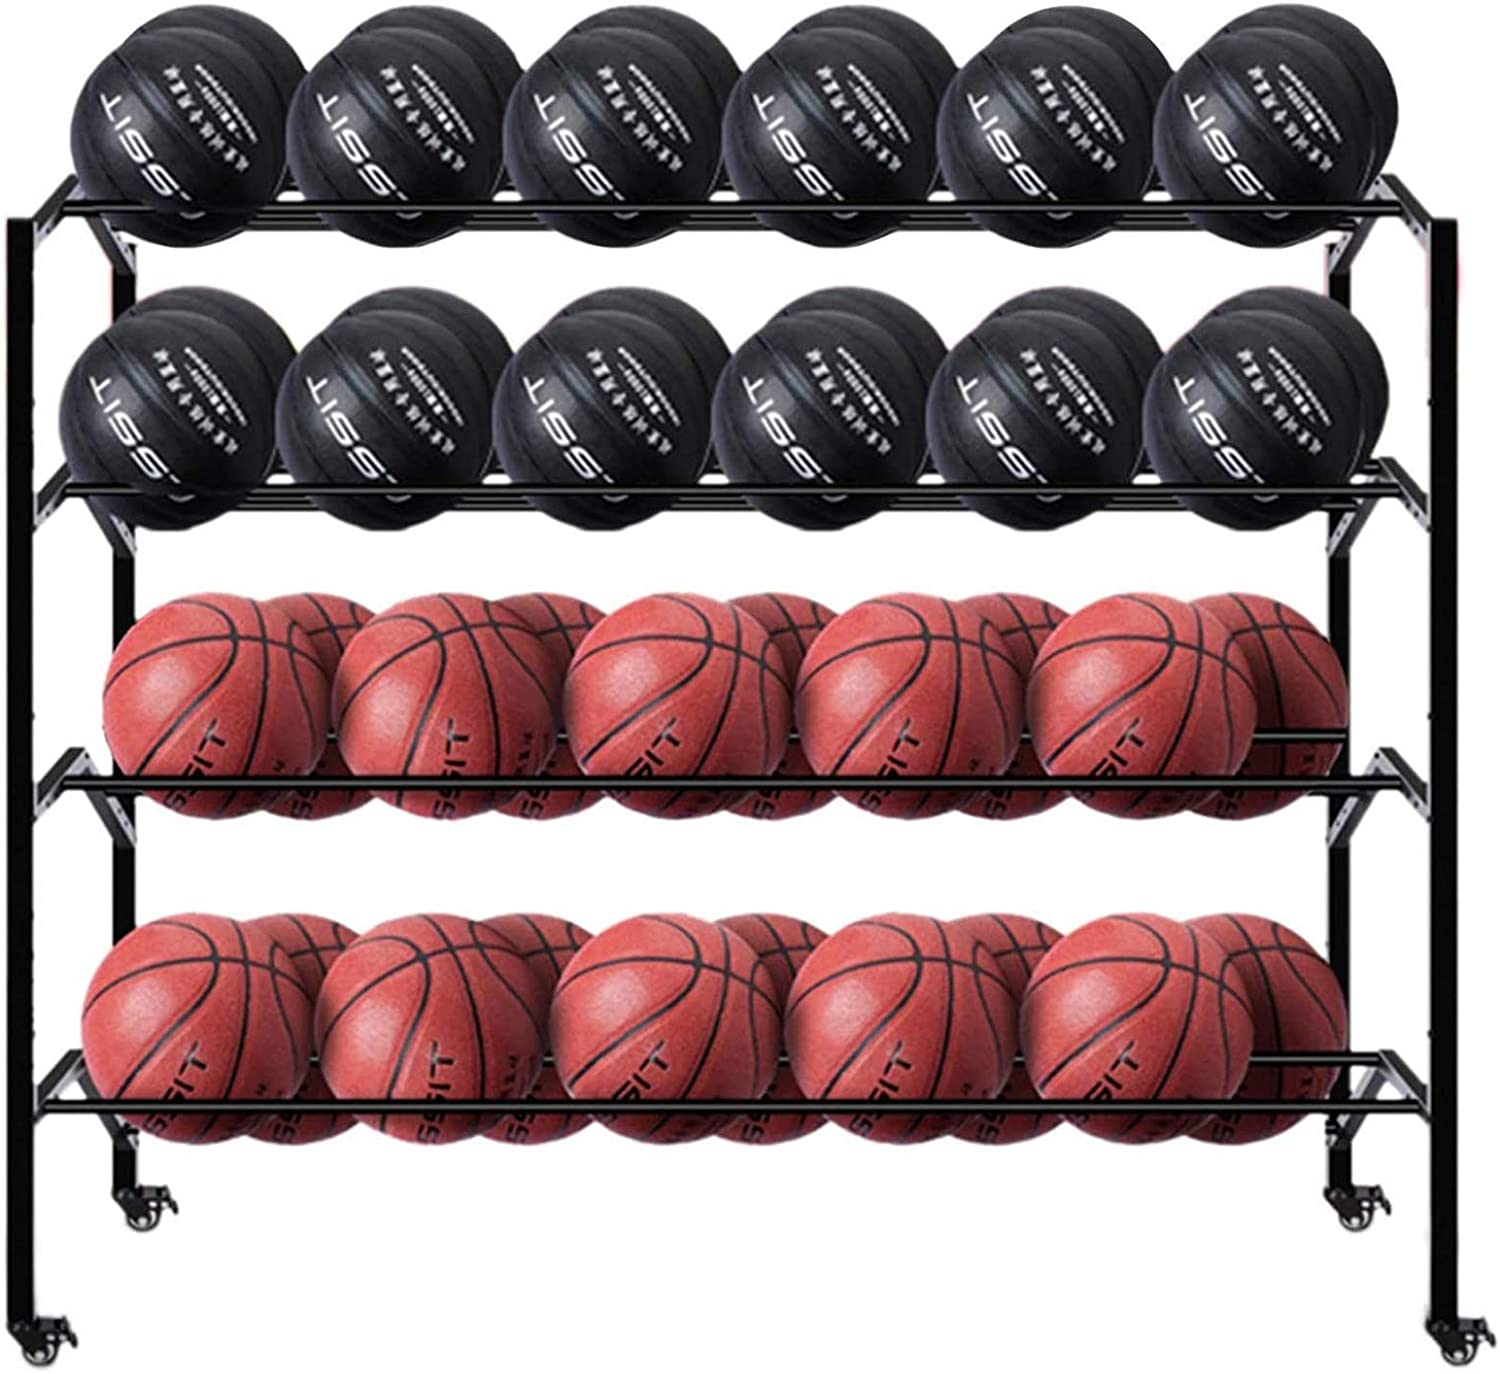 Double-Sided low-pricing Virginia Beach Mall Large Basketball Equipment Rack Storage 4-Tier Por